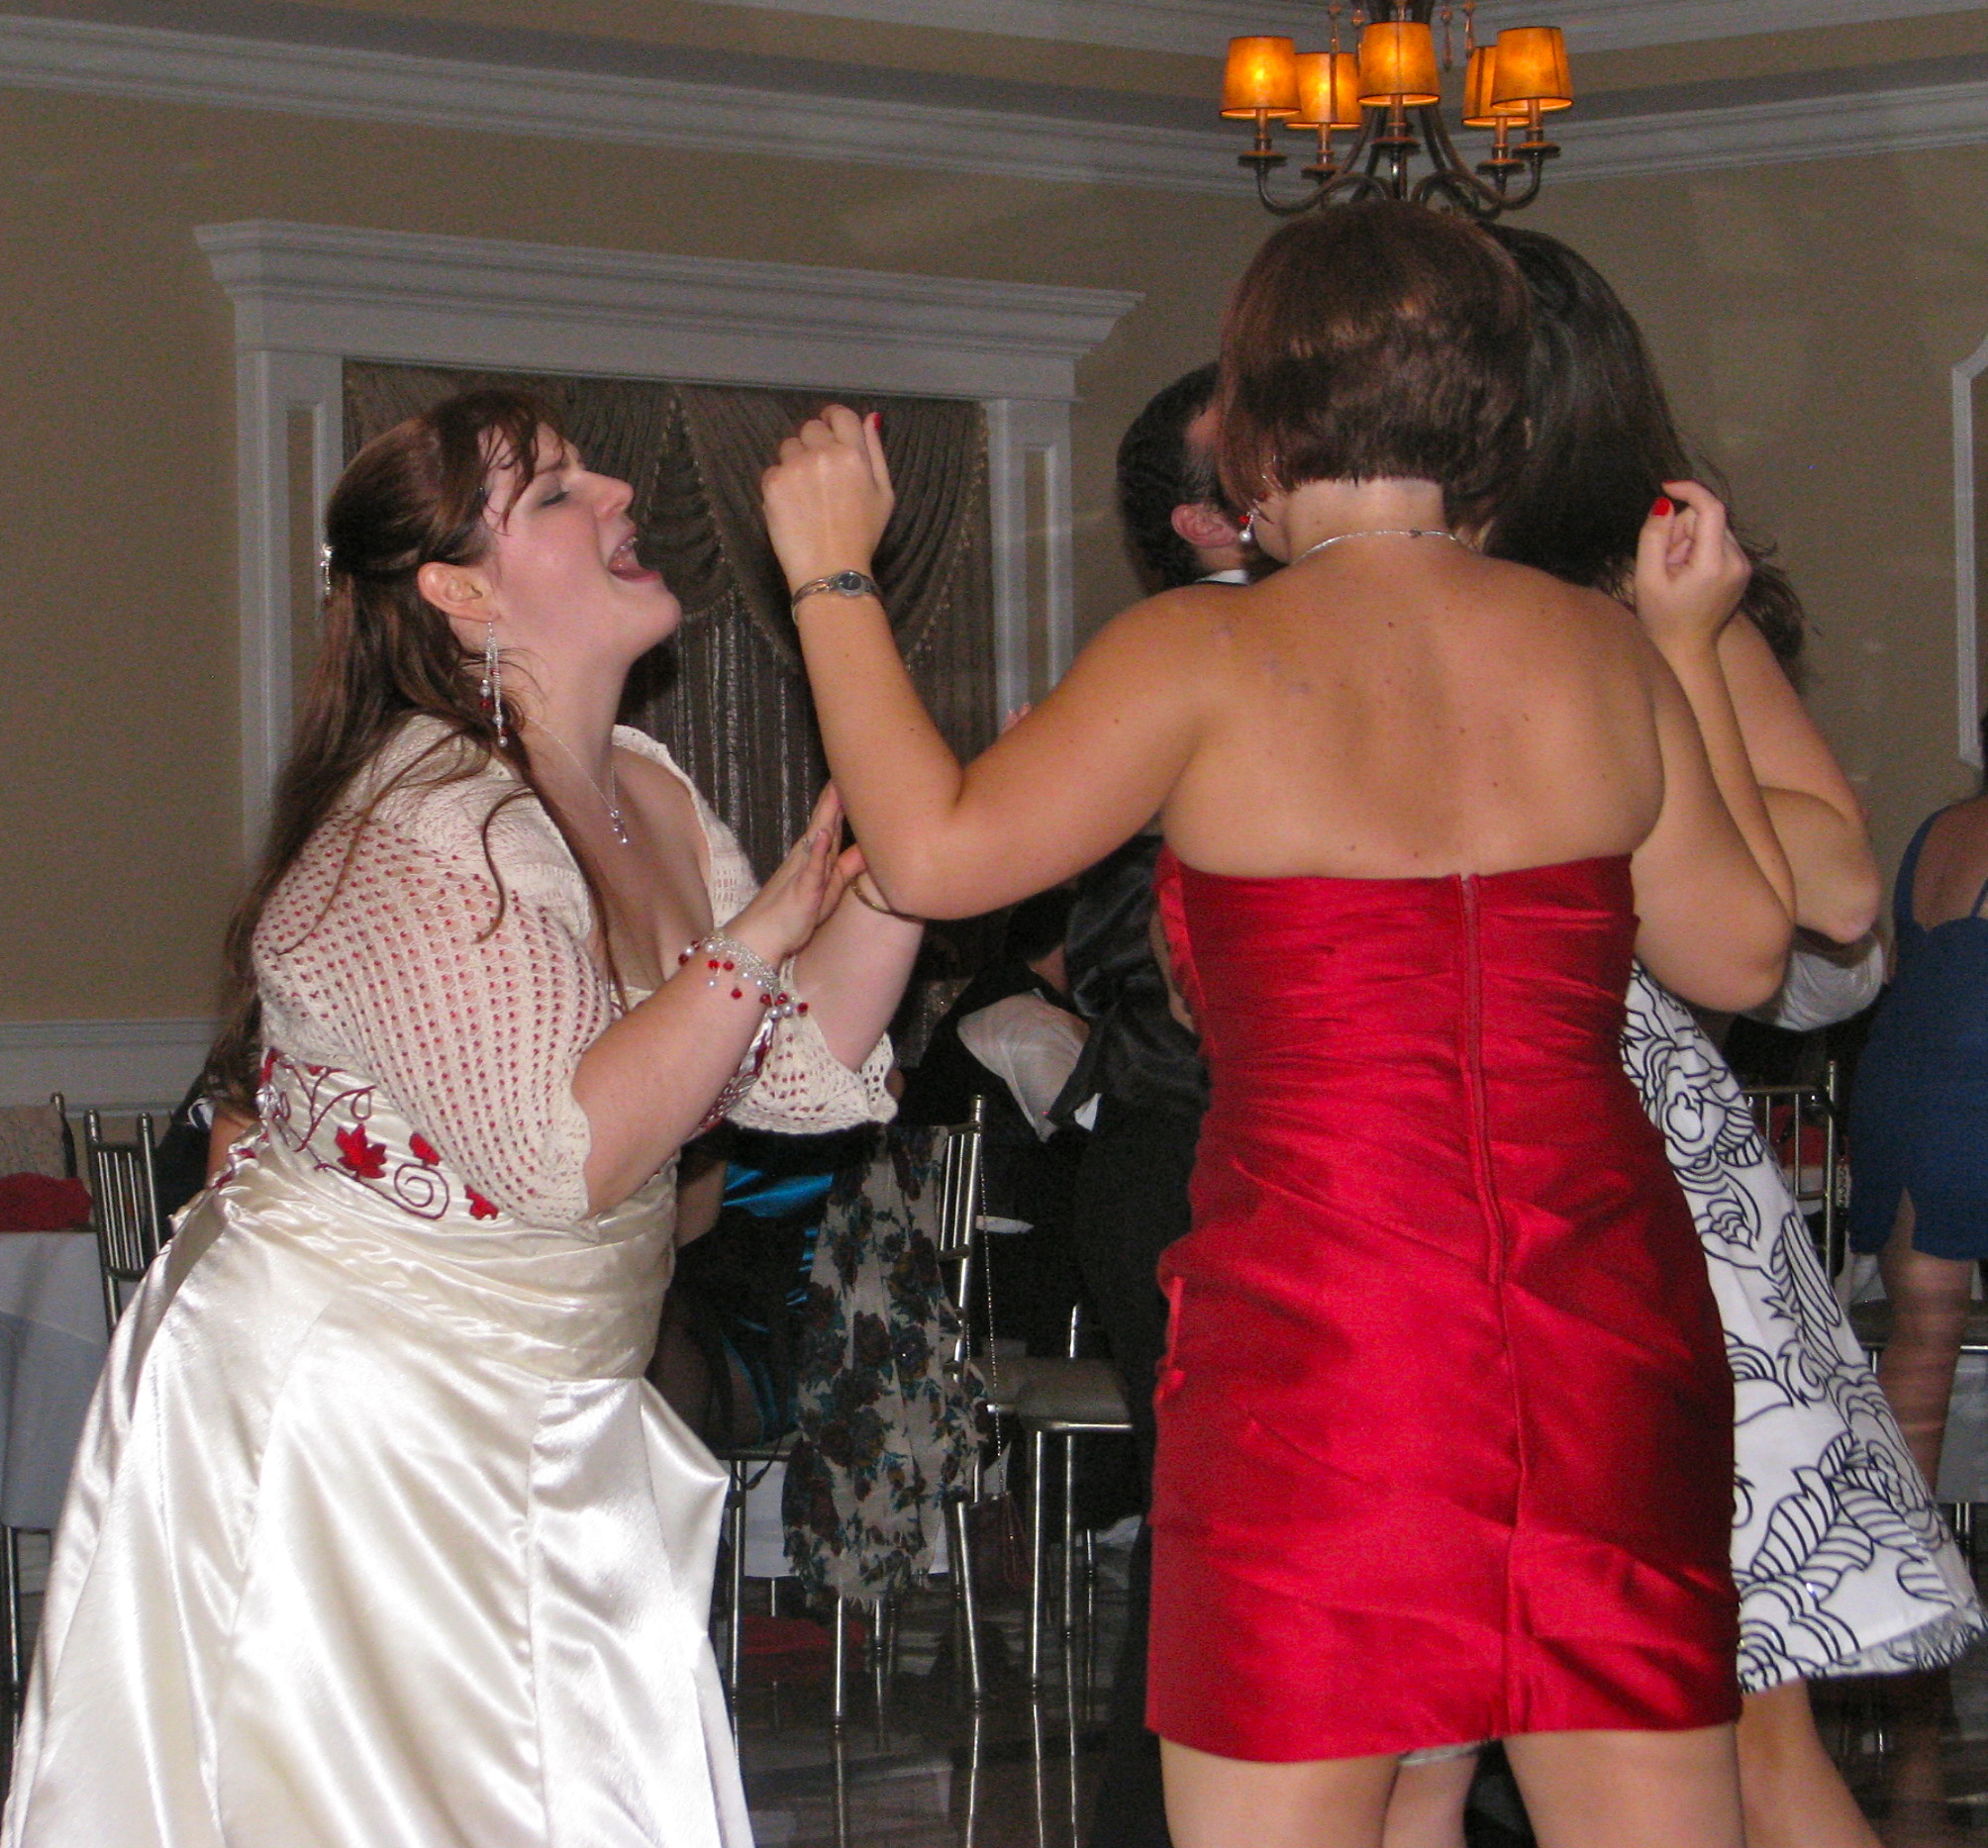 Fun Rhode Island Wedding Party DJ Tommy James and The Shondells Mony, Mony